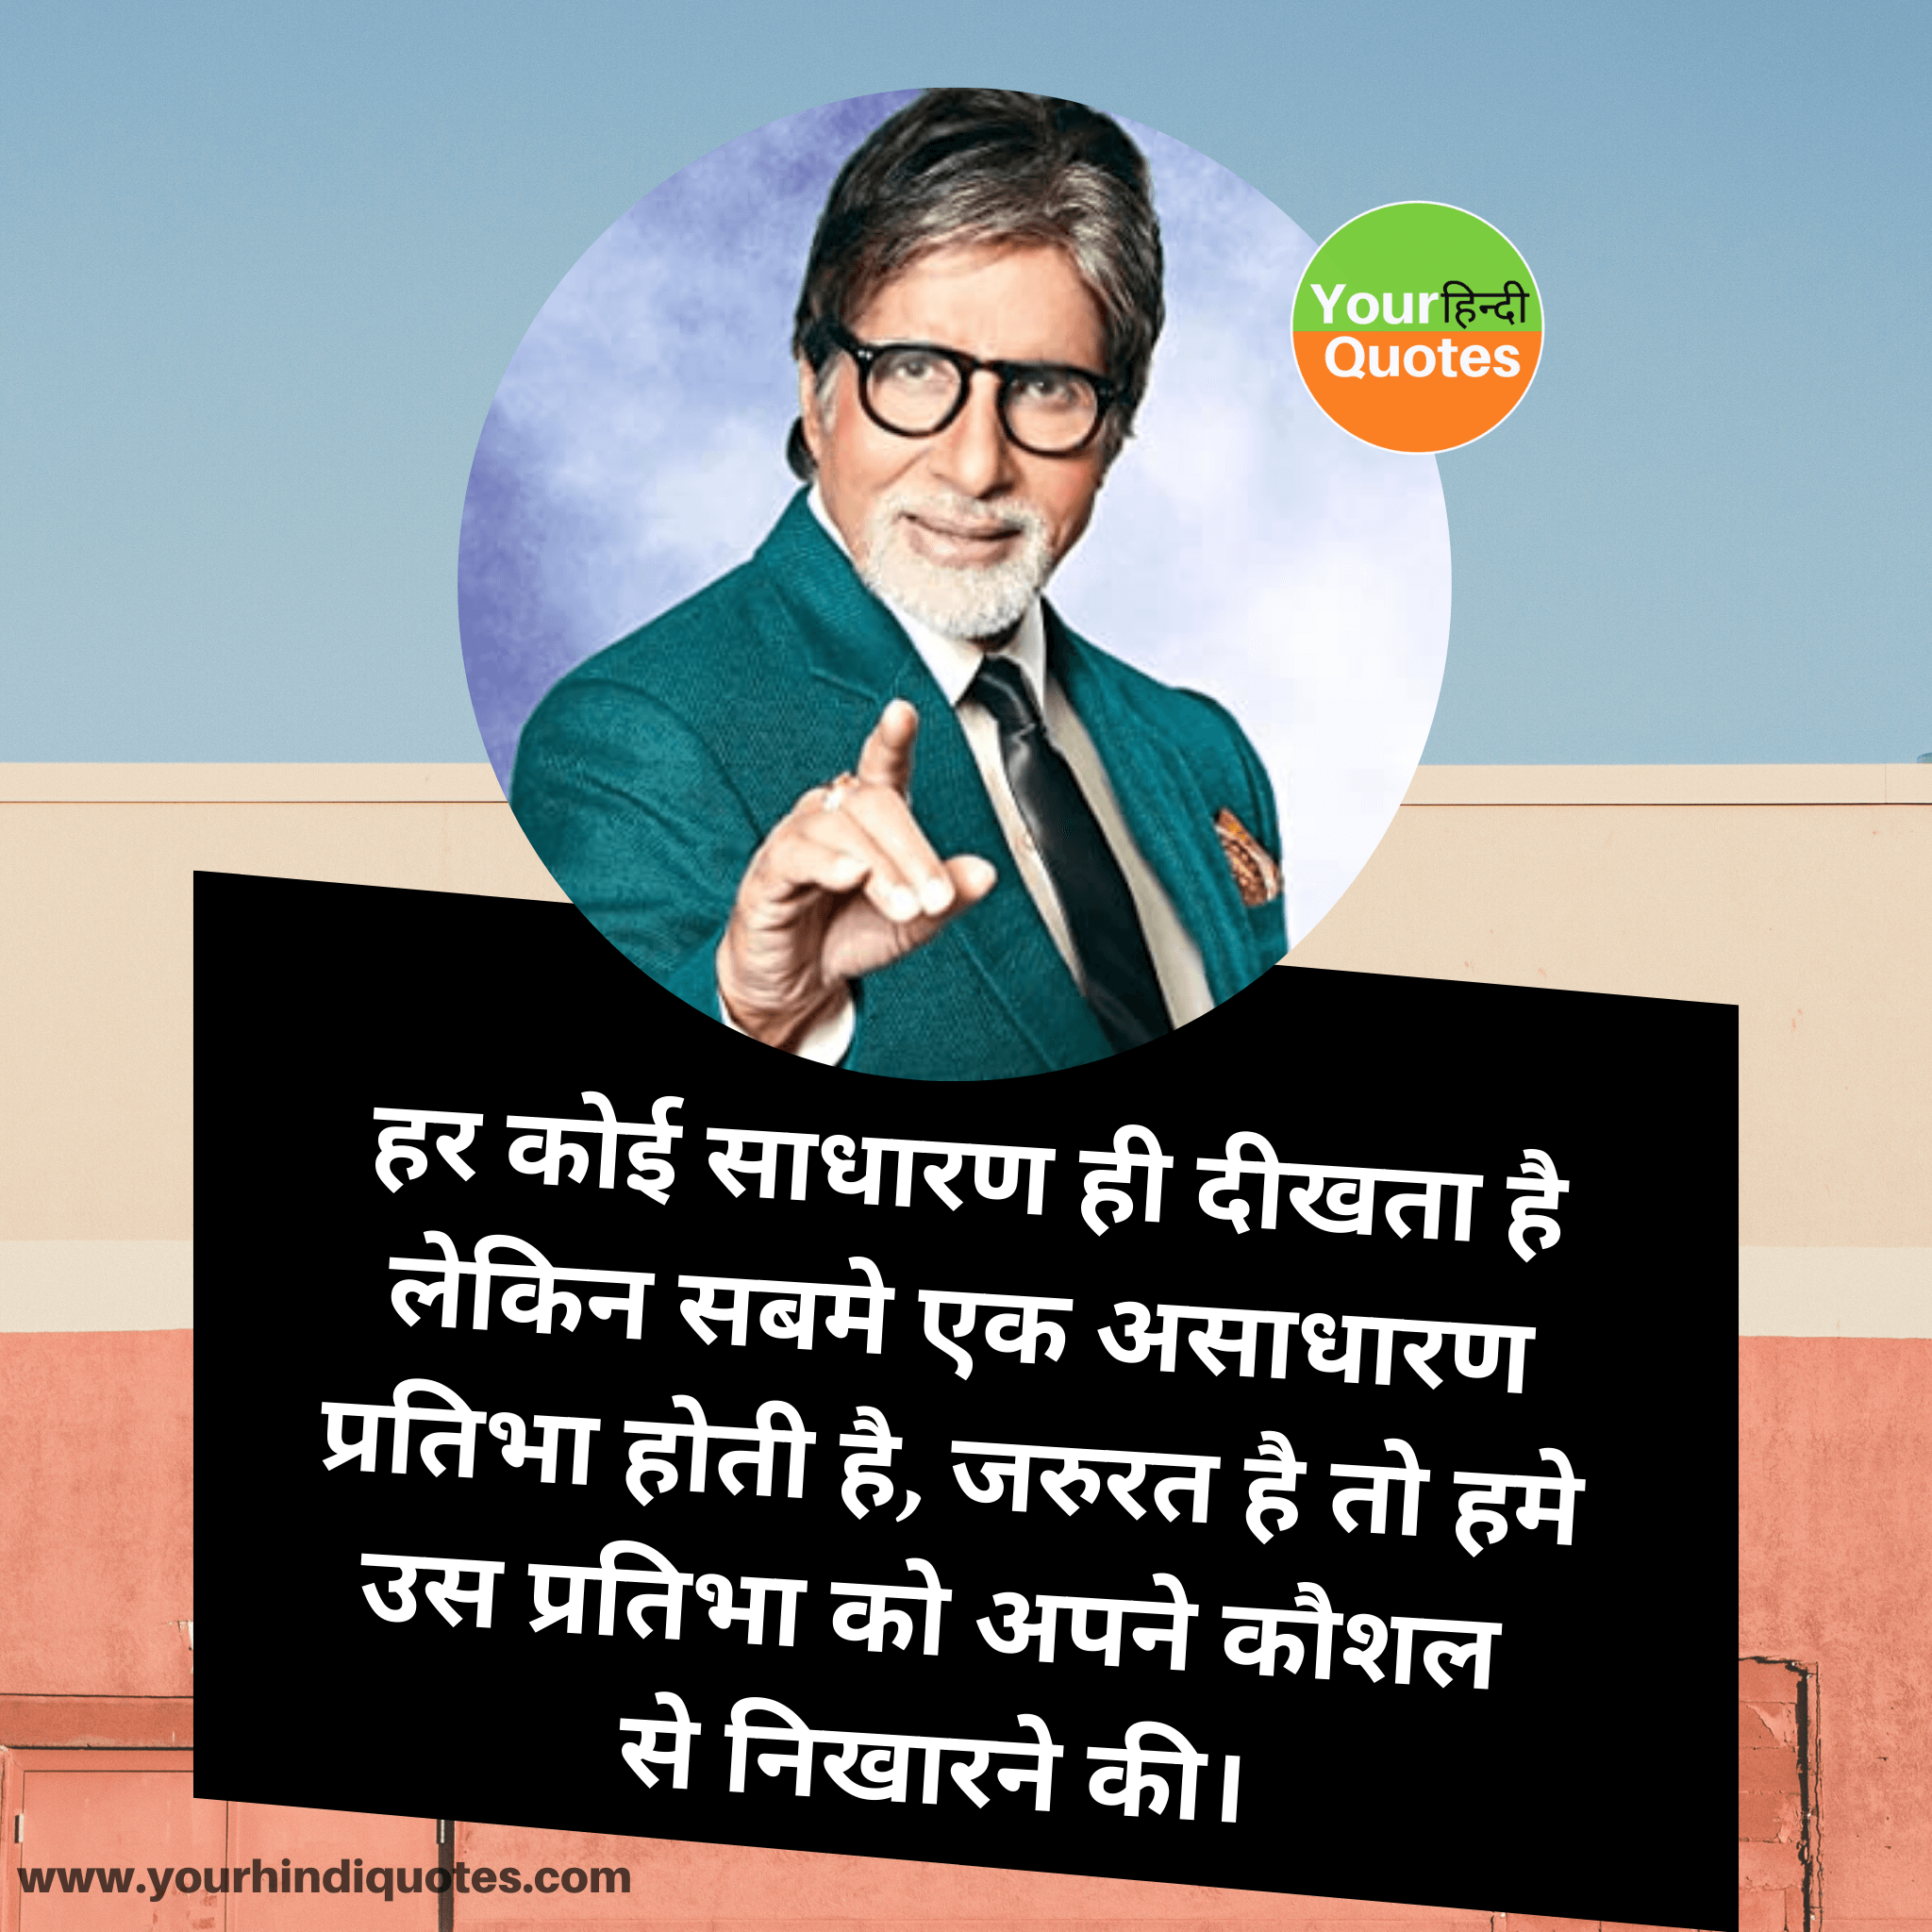 Amitabh Bachchan Quotes in Hindi